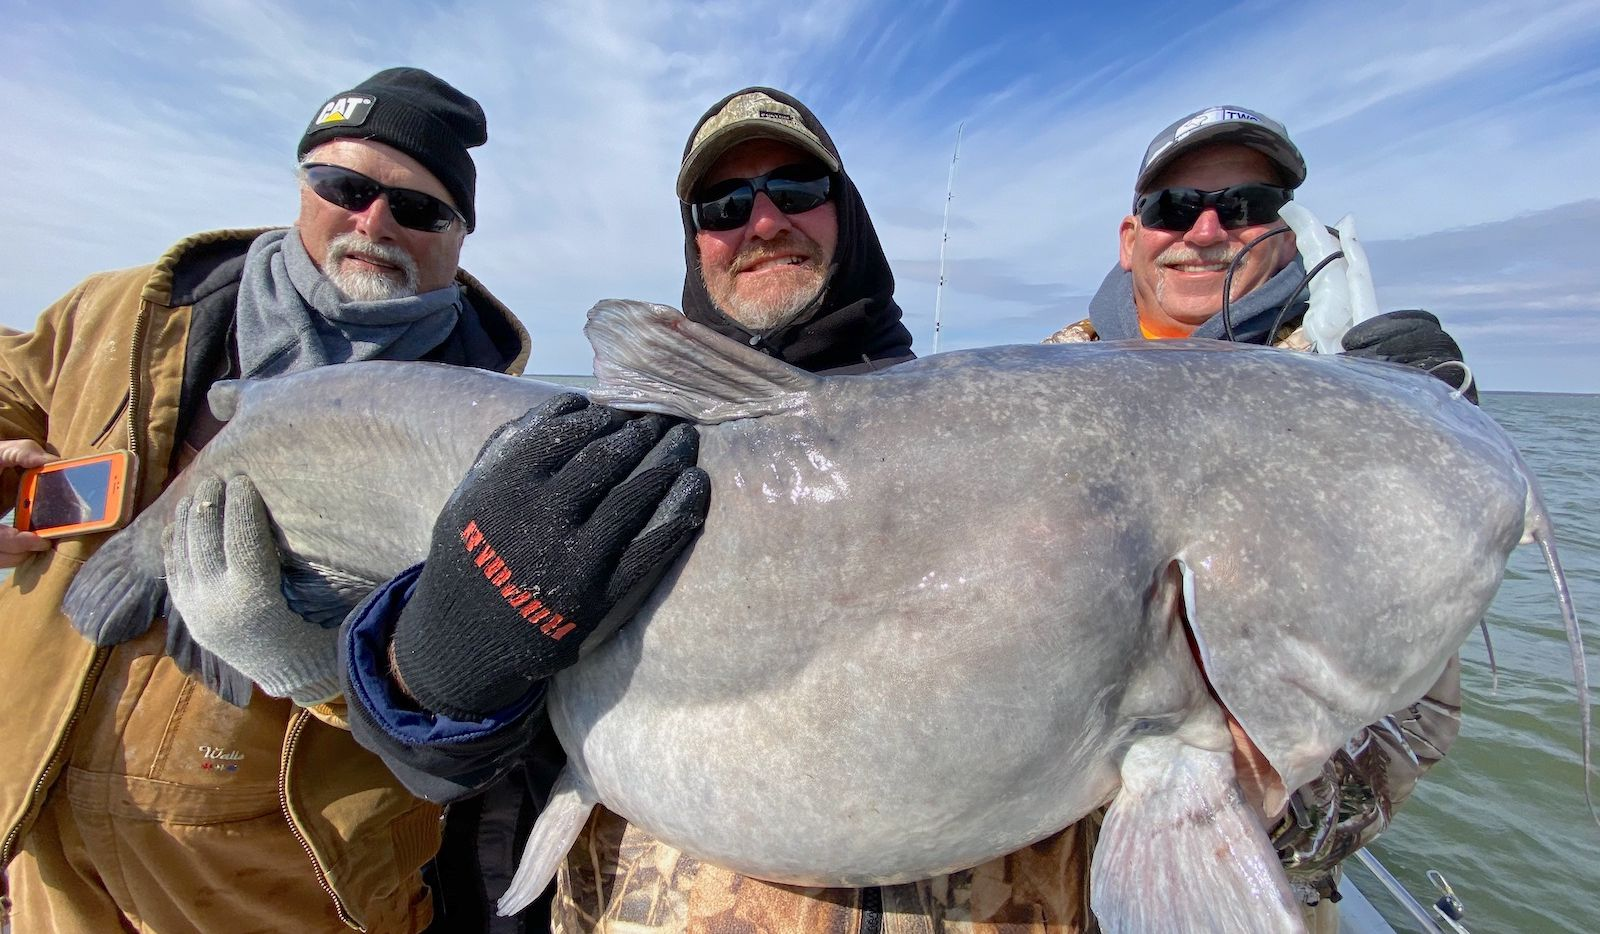 Kenny Quiett of Delia, Kansas (center) with the 80-pound blue catfish he landed on Feb. 15 at Lake Tawakoni. Veteran fishing guide Noel Ibarra put the angler on the fish while drifting in about 34 feet water. The fat cat ate a six-inch piece of gizzard shad rigged on a 8/0 circle hook. Ibarra rigs with a 30-pound test monofilament main line and 100-pound test mono leader.